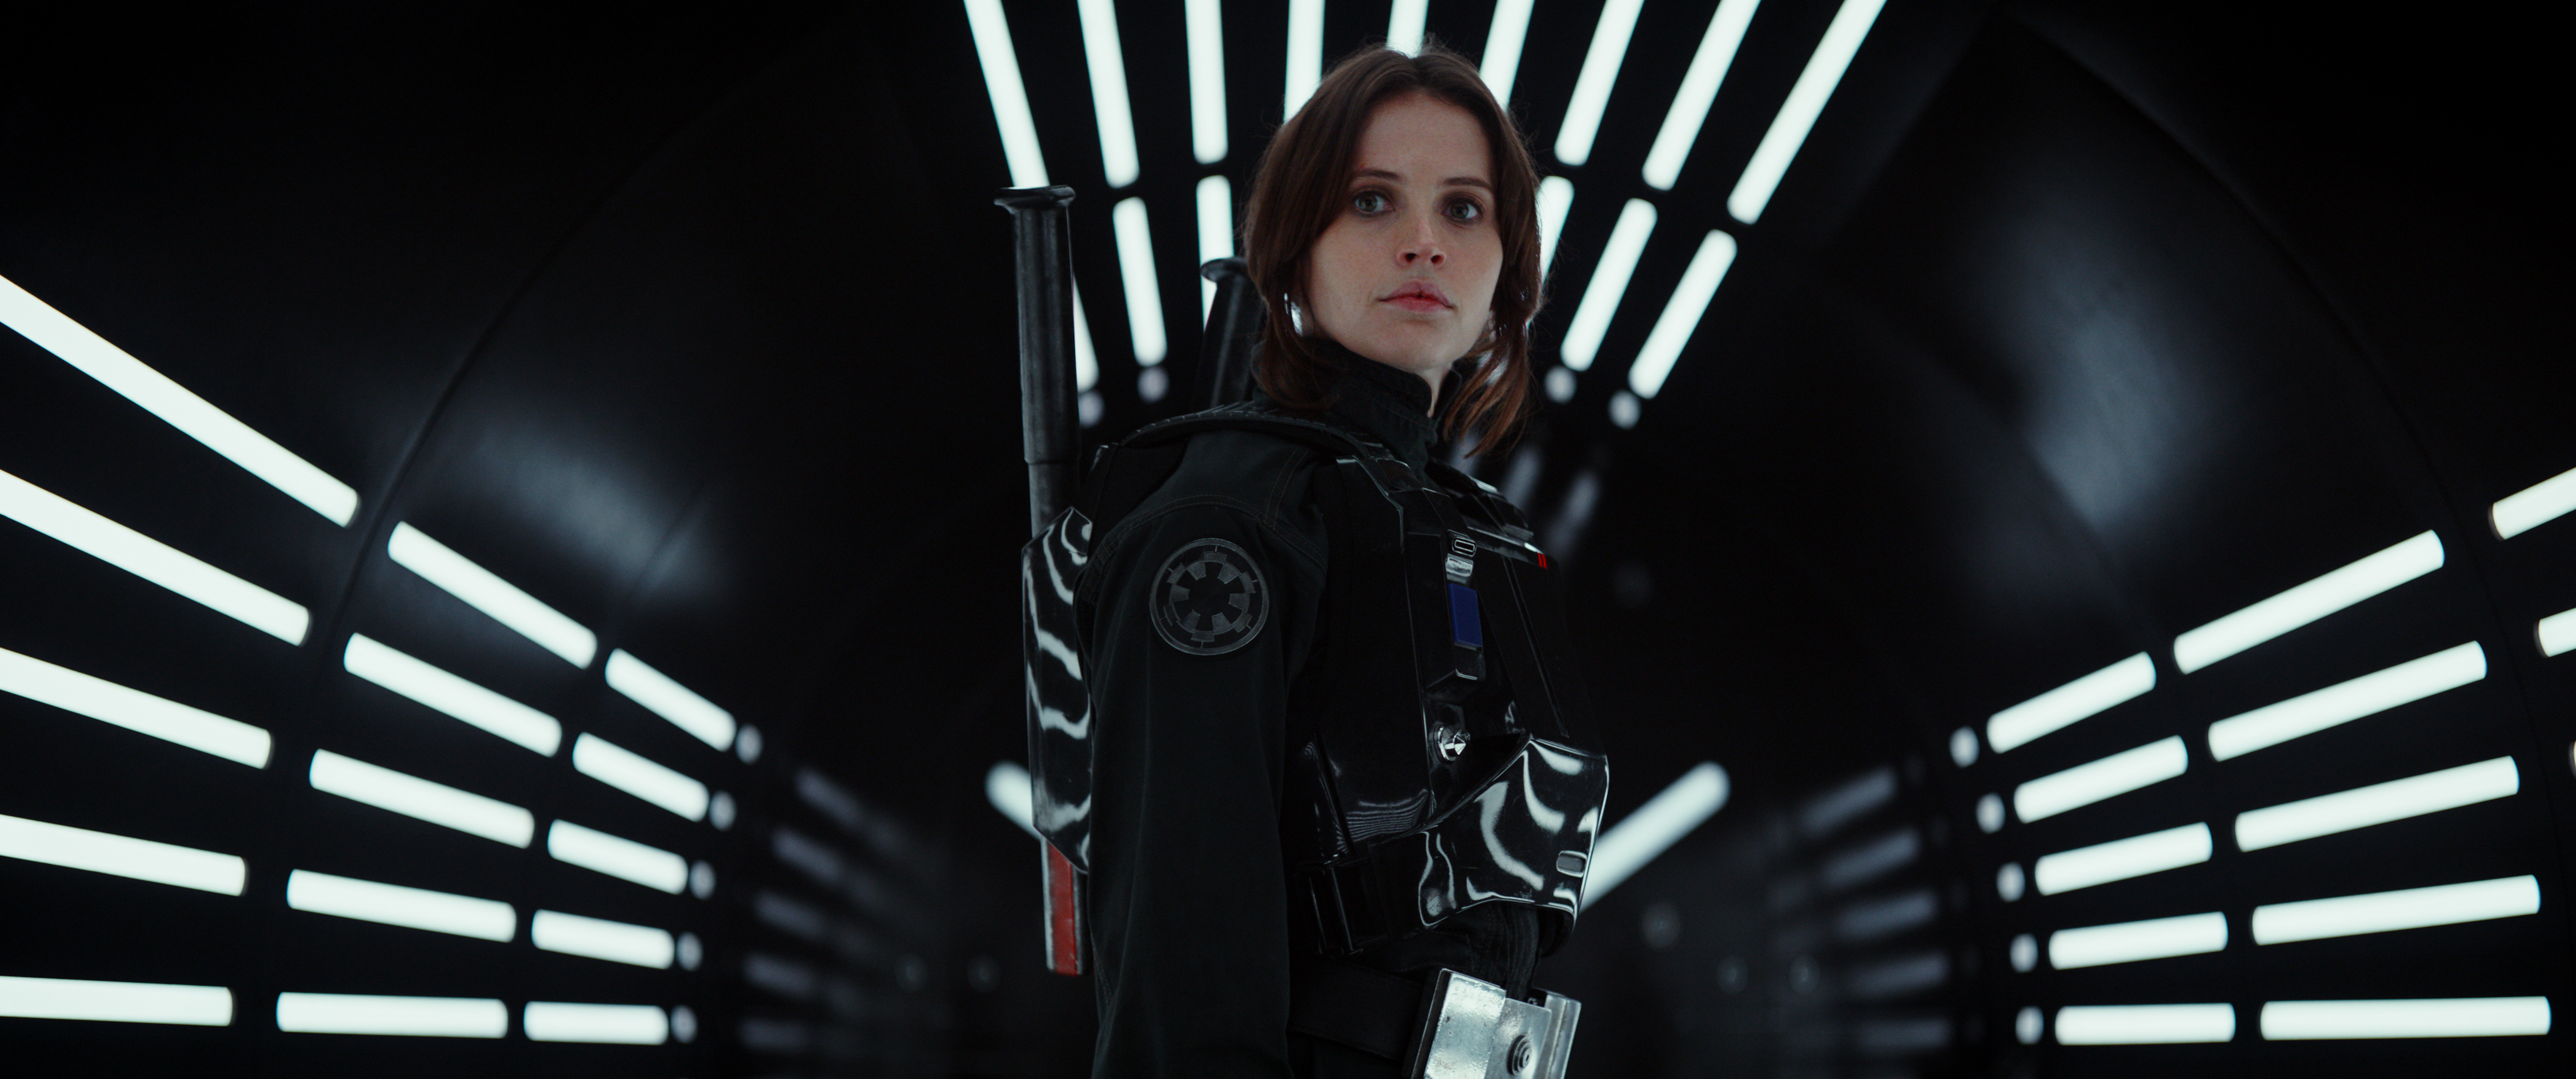 Rogue One: A Star Wars Story..(Felicity Jones)..Ph: Film Frame..© 2016 Lucasfilm Ltd. All Rights Reserved.